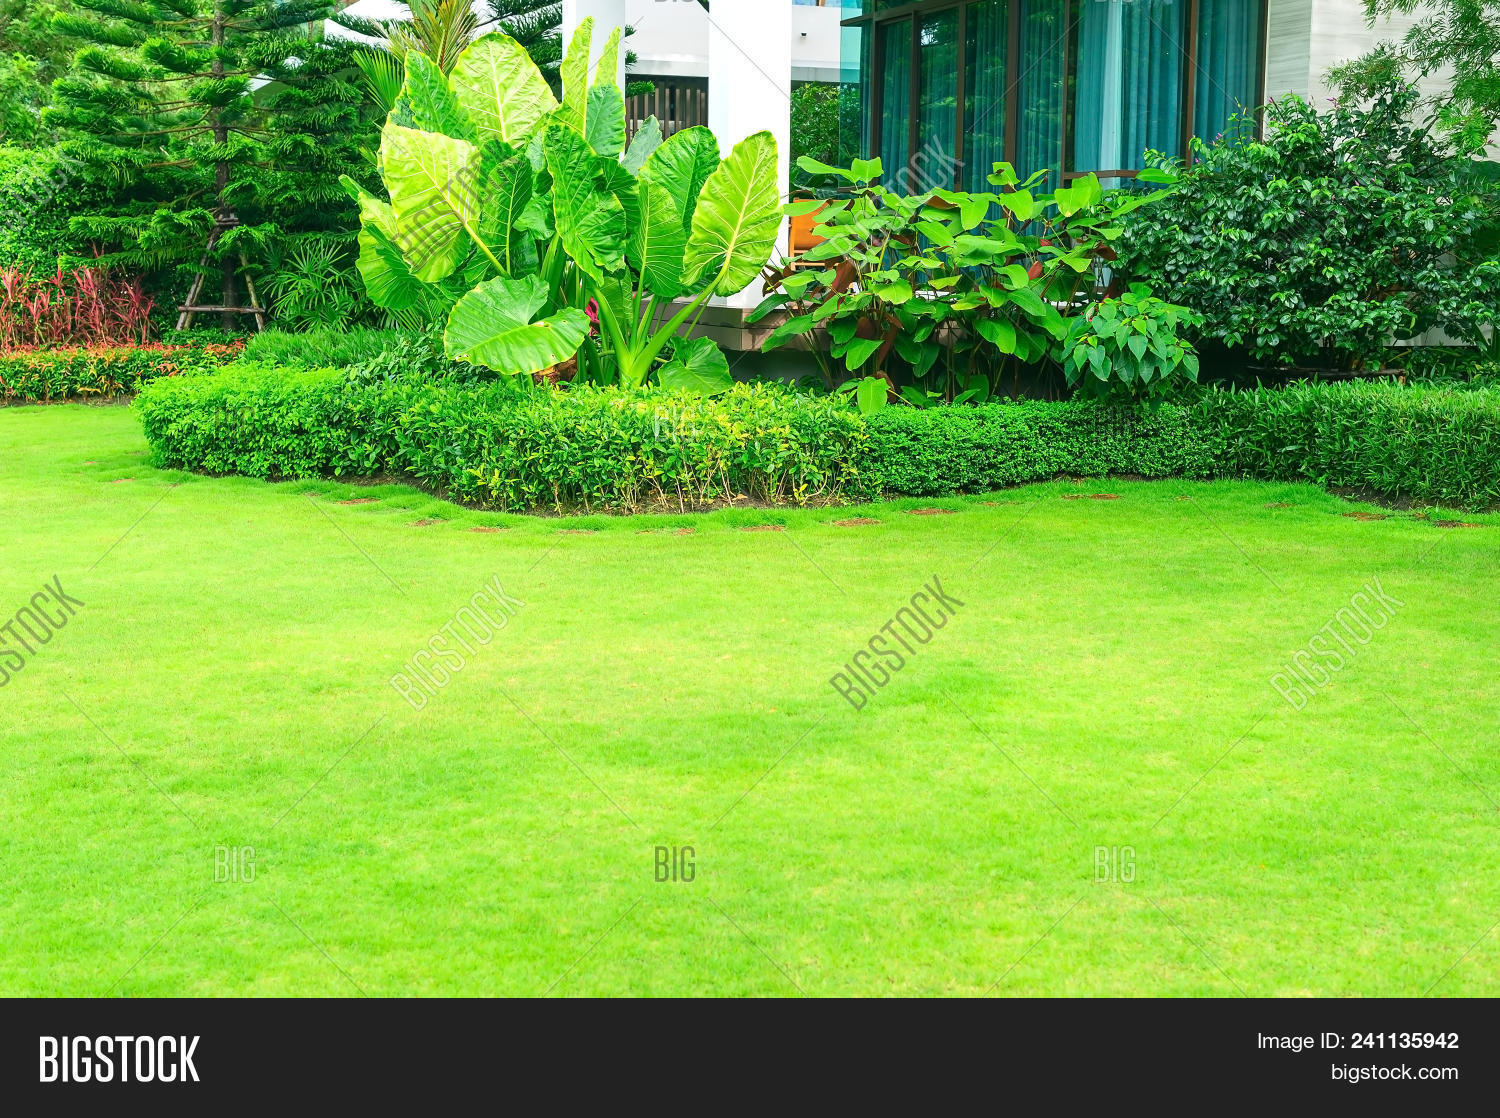 Green Lawn Front Lawn Image Photo Free Trial Bigstock